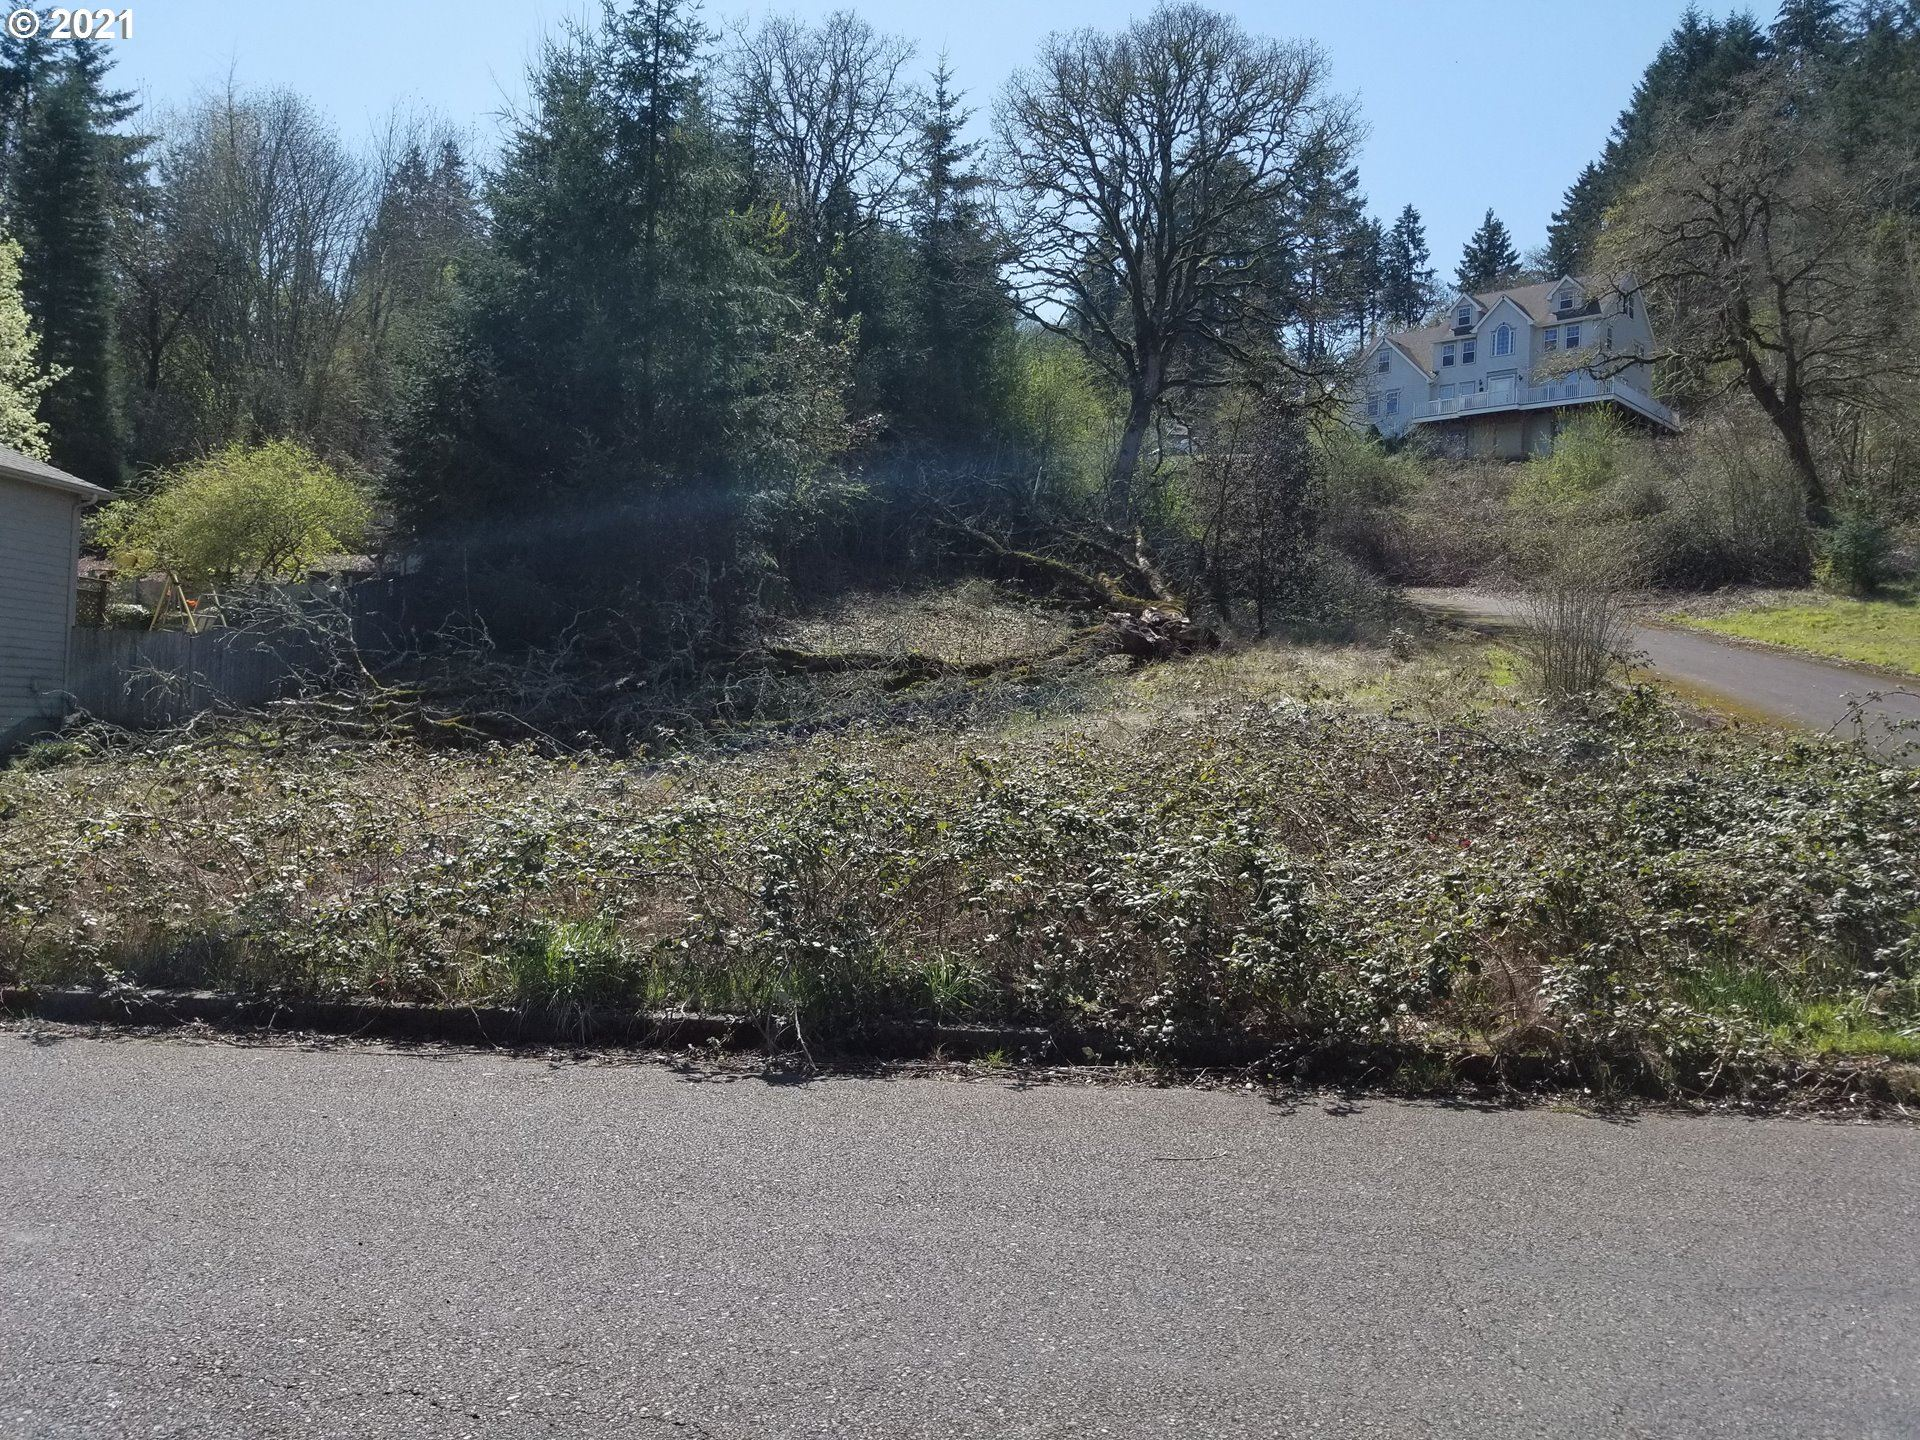 Photo of Morrow CT NW, Salem, OR 97304 (MLS # 21044441)